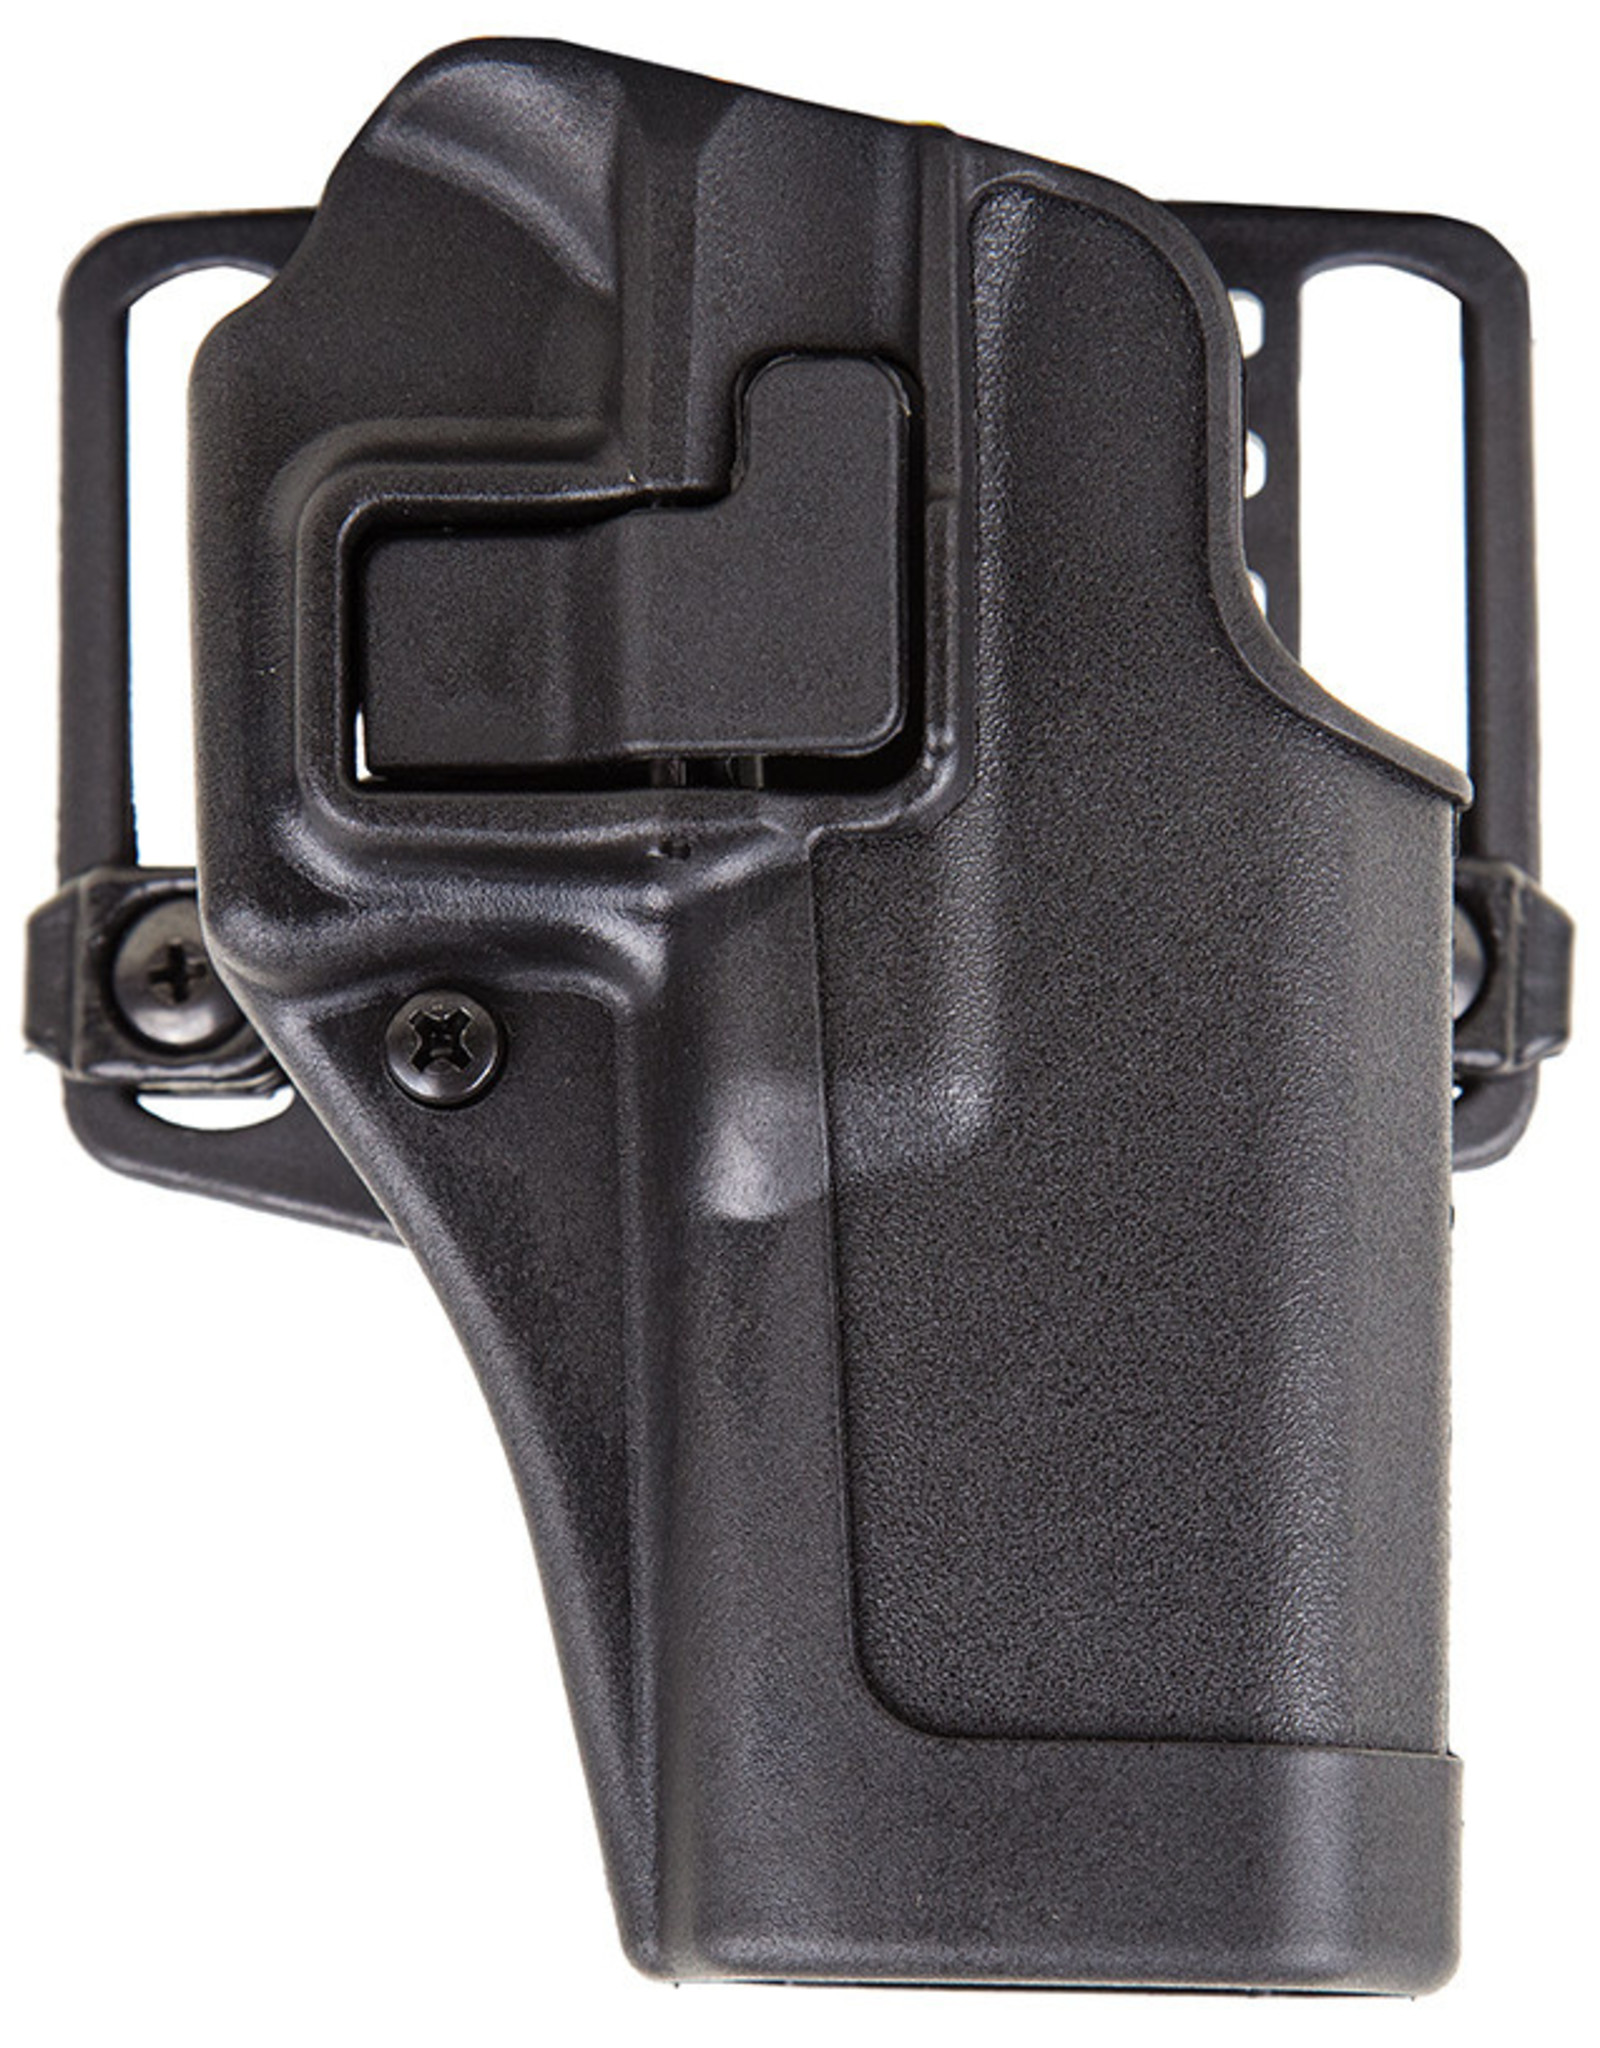 BLACK HAWK PRODUCTS Blackhawk Holster for Ruger P85 & P89